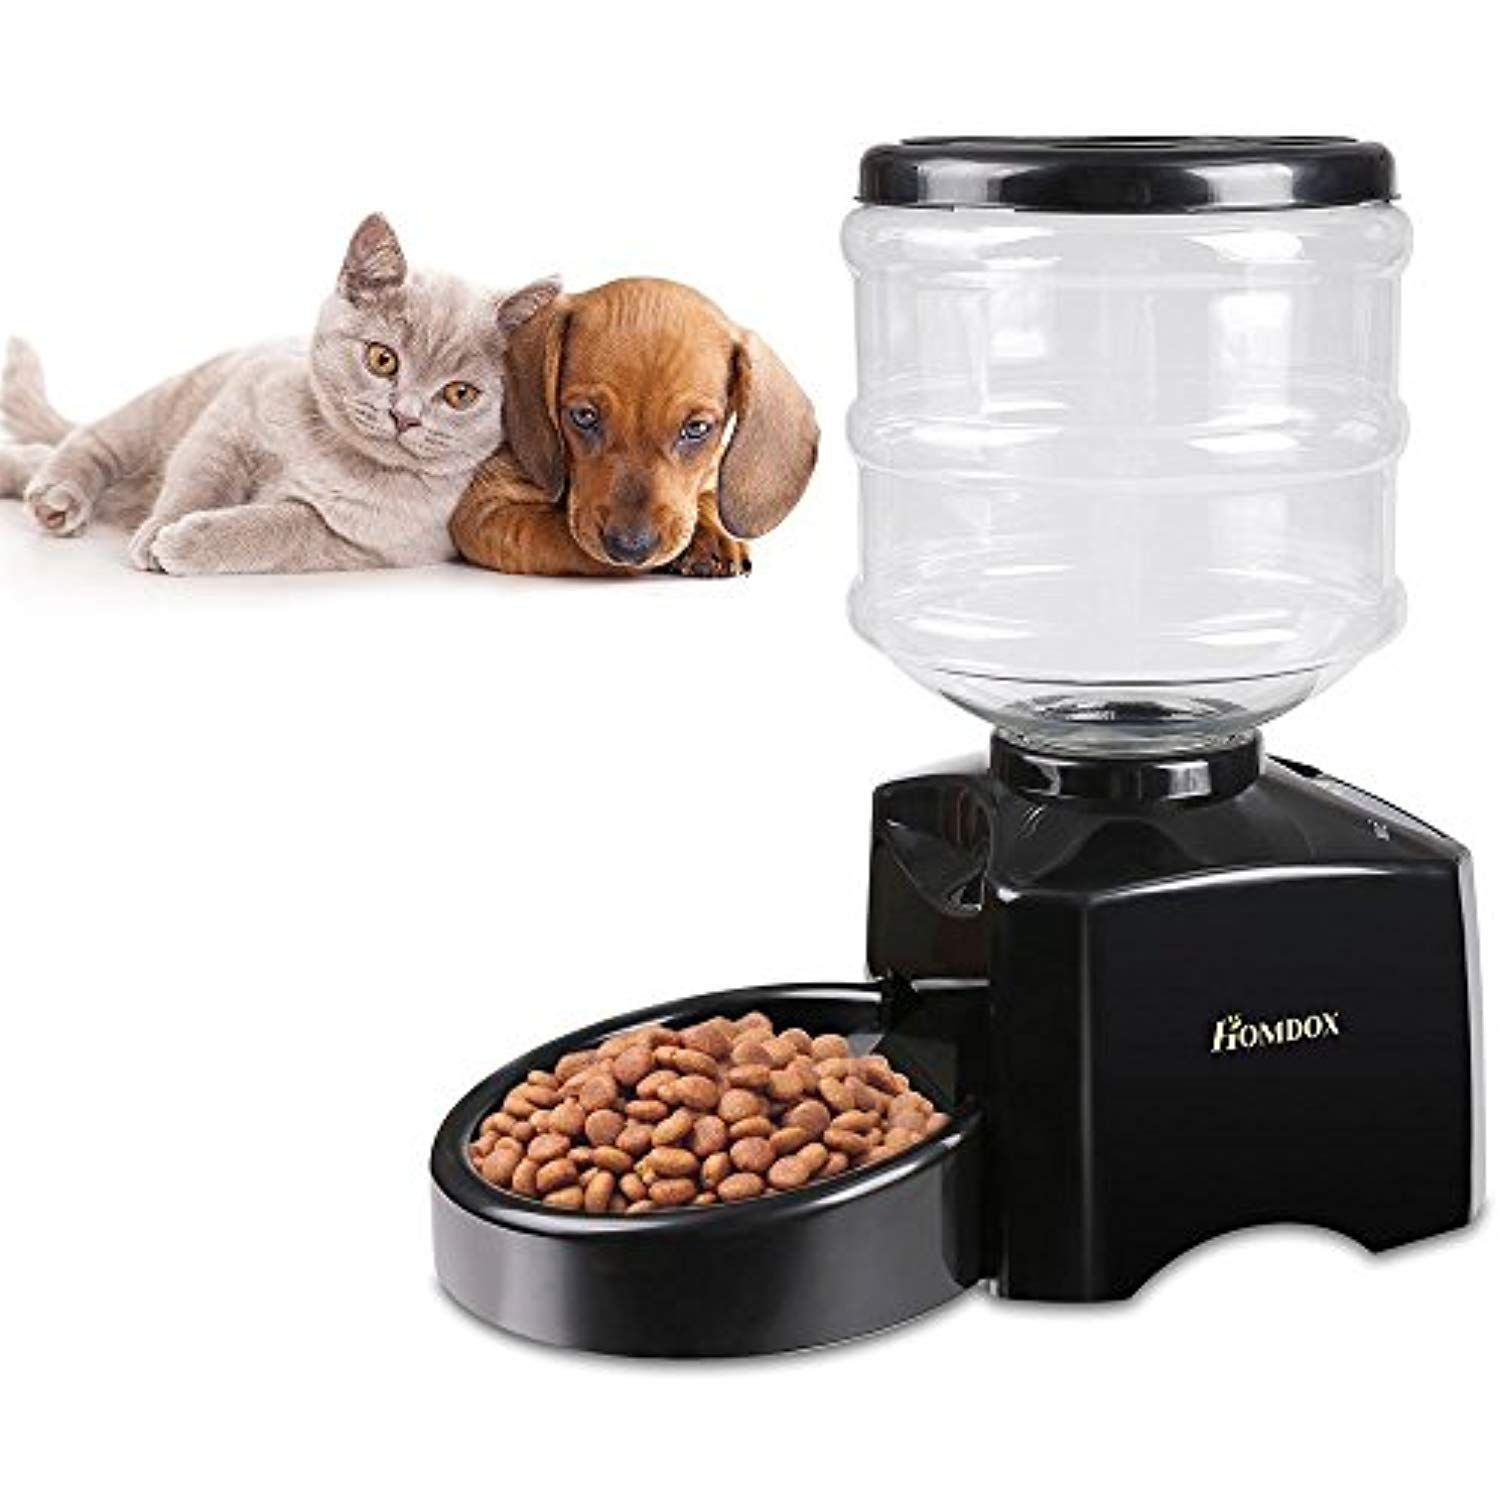 Homdox Automatic Pet Feeder Food Dispenser 4 Meal for Cat